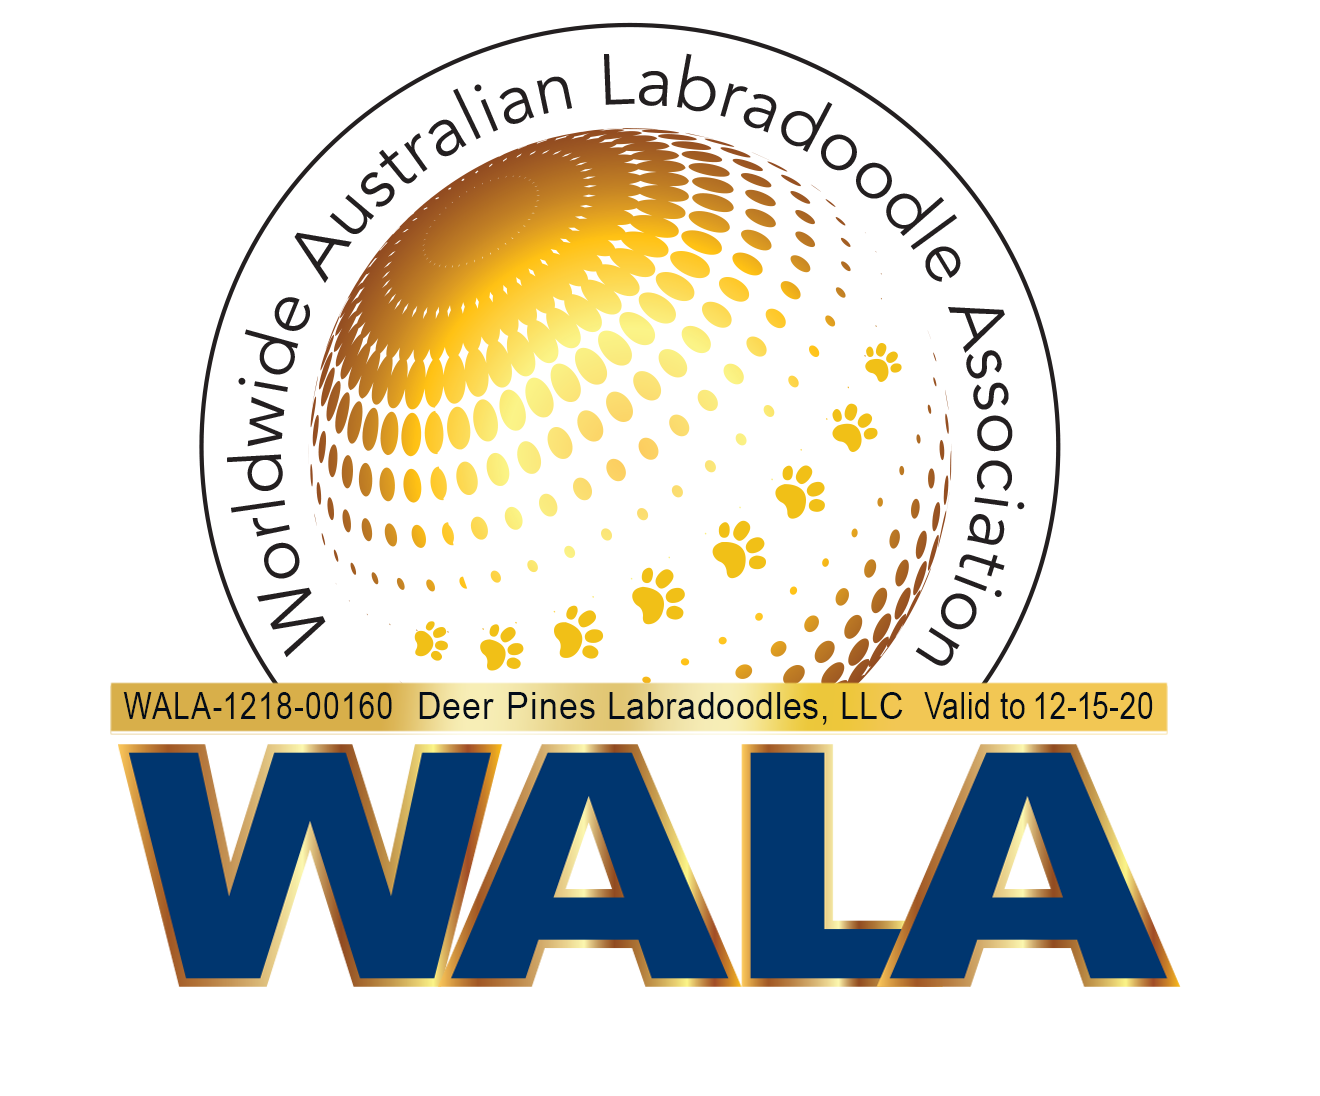 Worldwide Australian Labradoodle Association